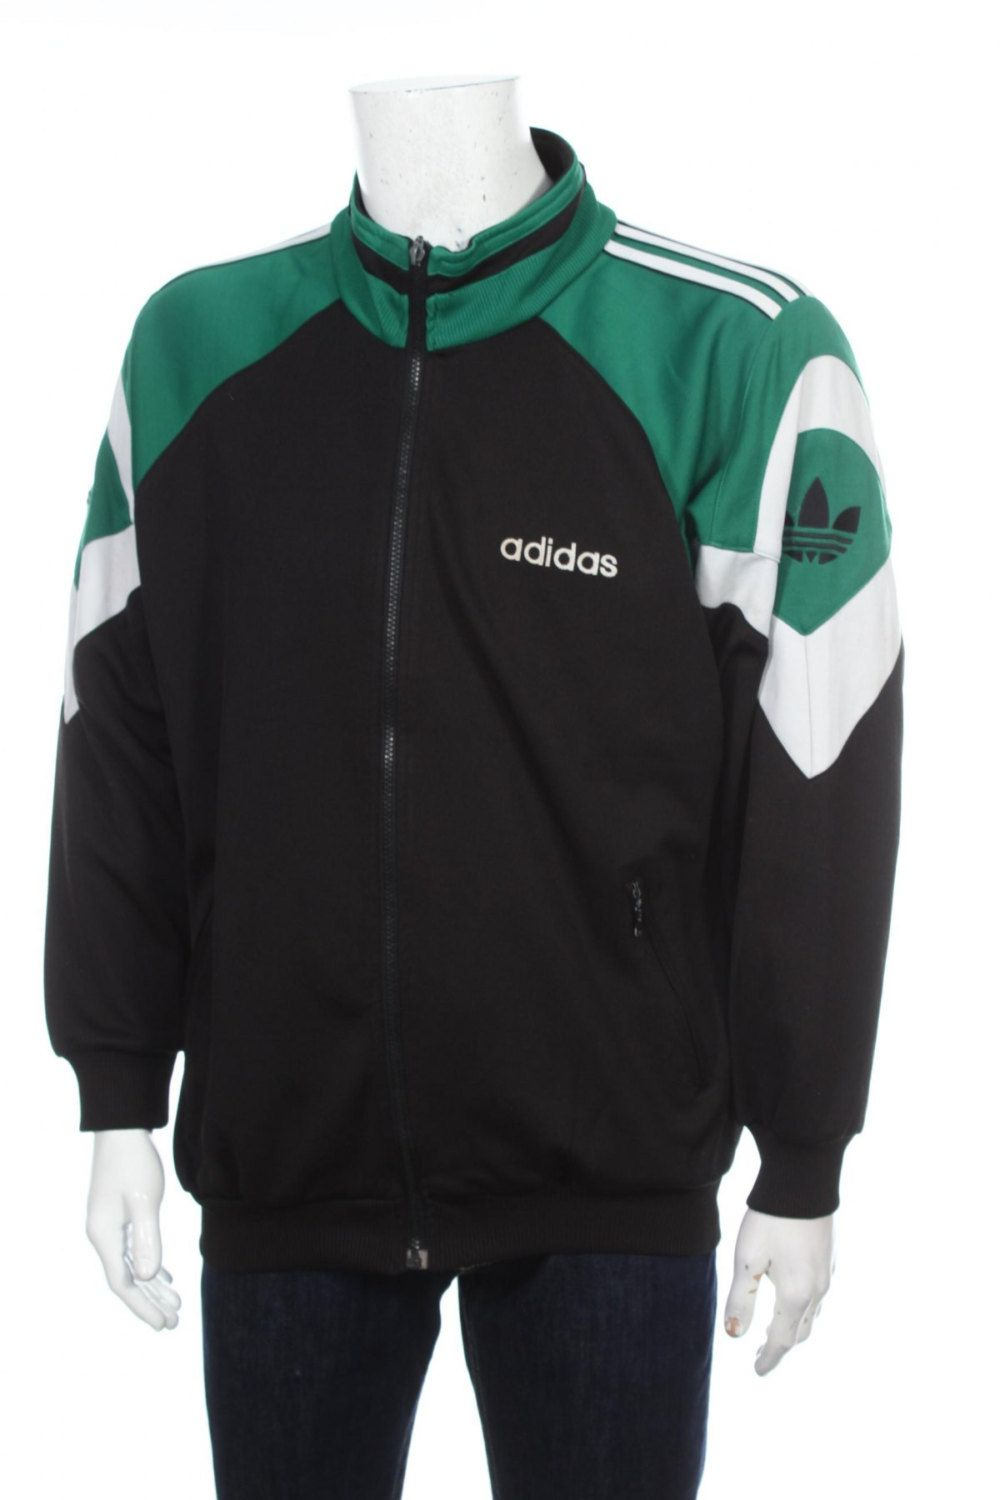 Vintage 90s Adidas Trefoil logo Windbraker Tracksuit Top jacket Color block  Black/ Green /White Size L